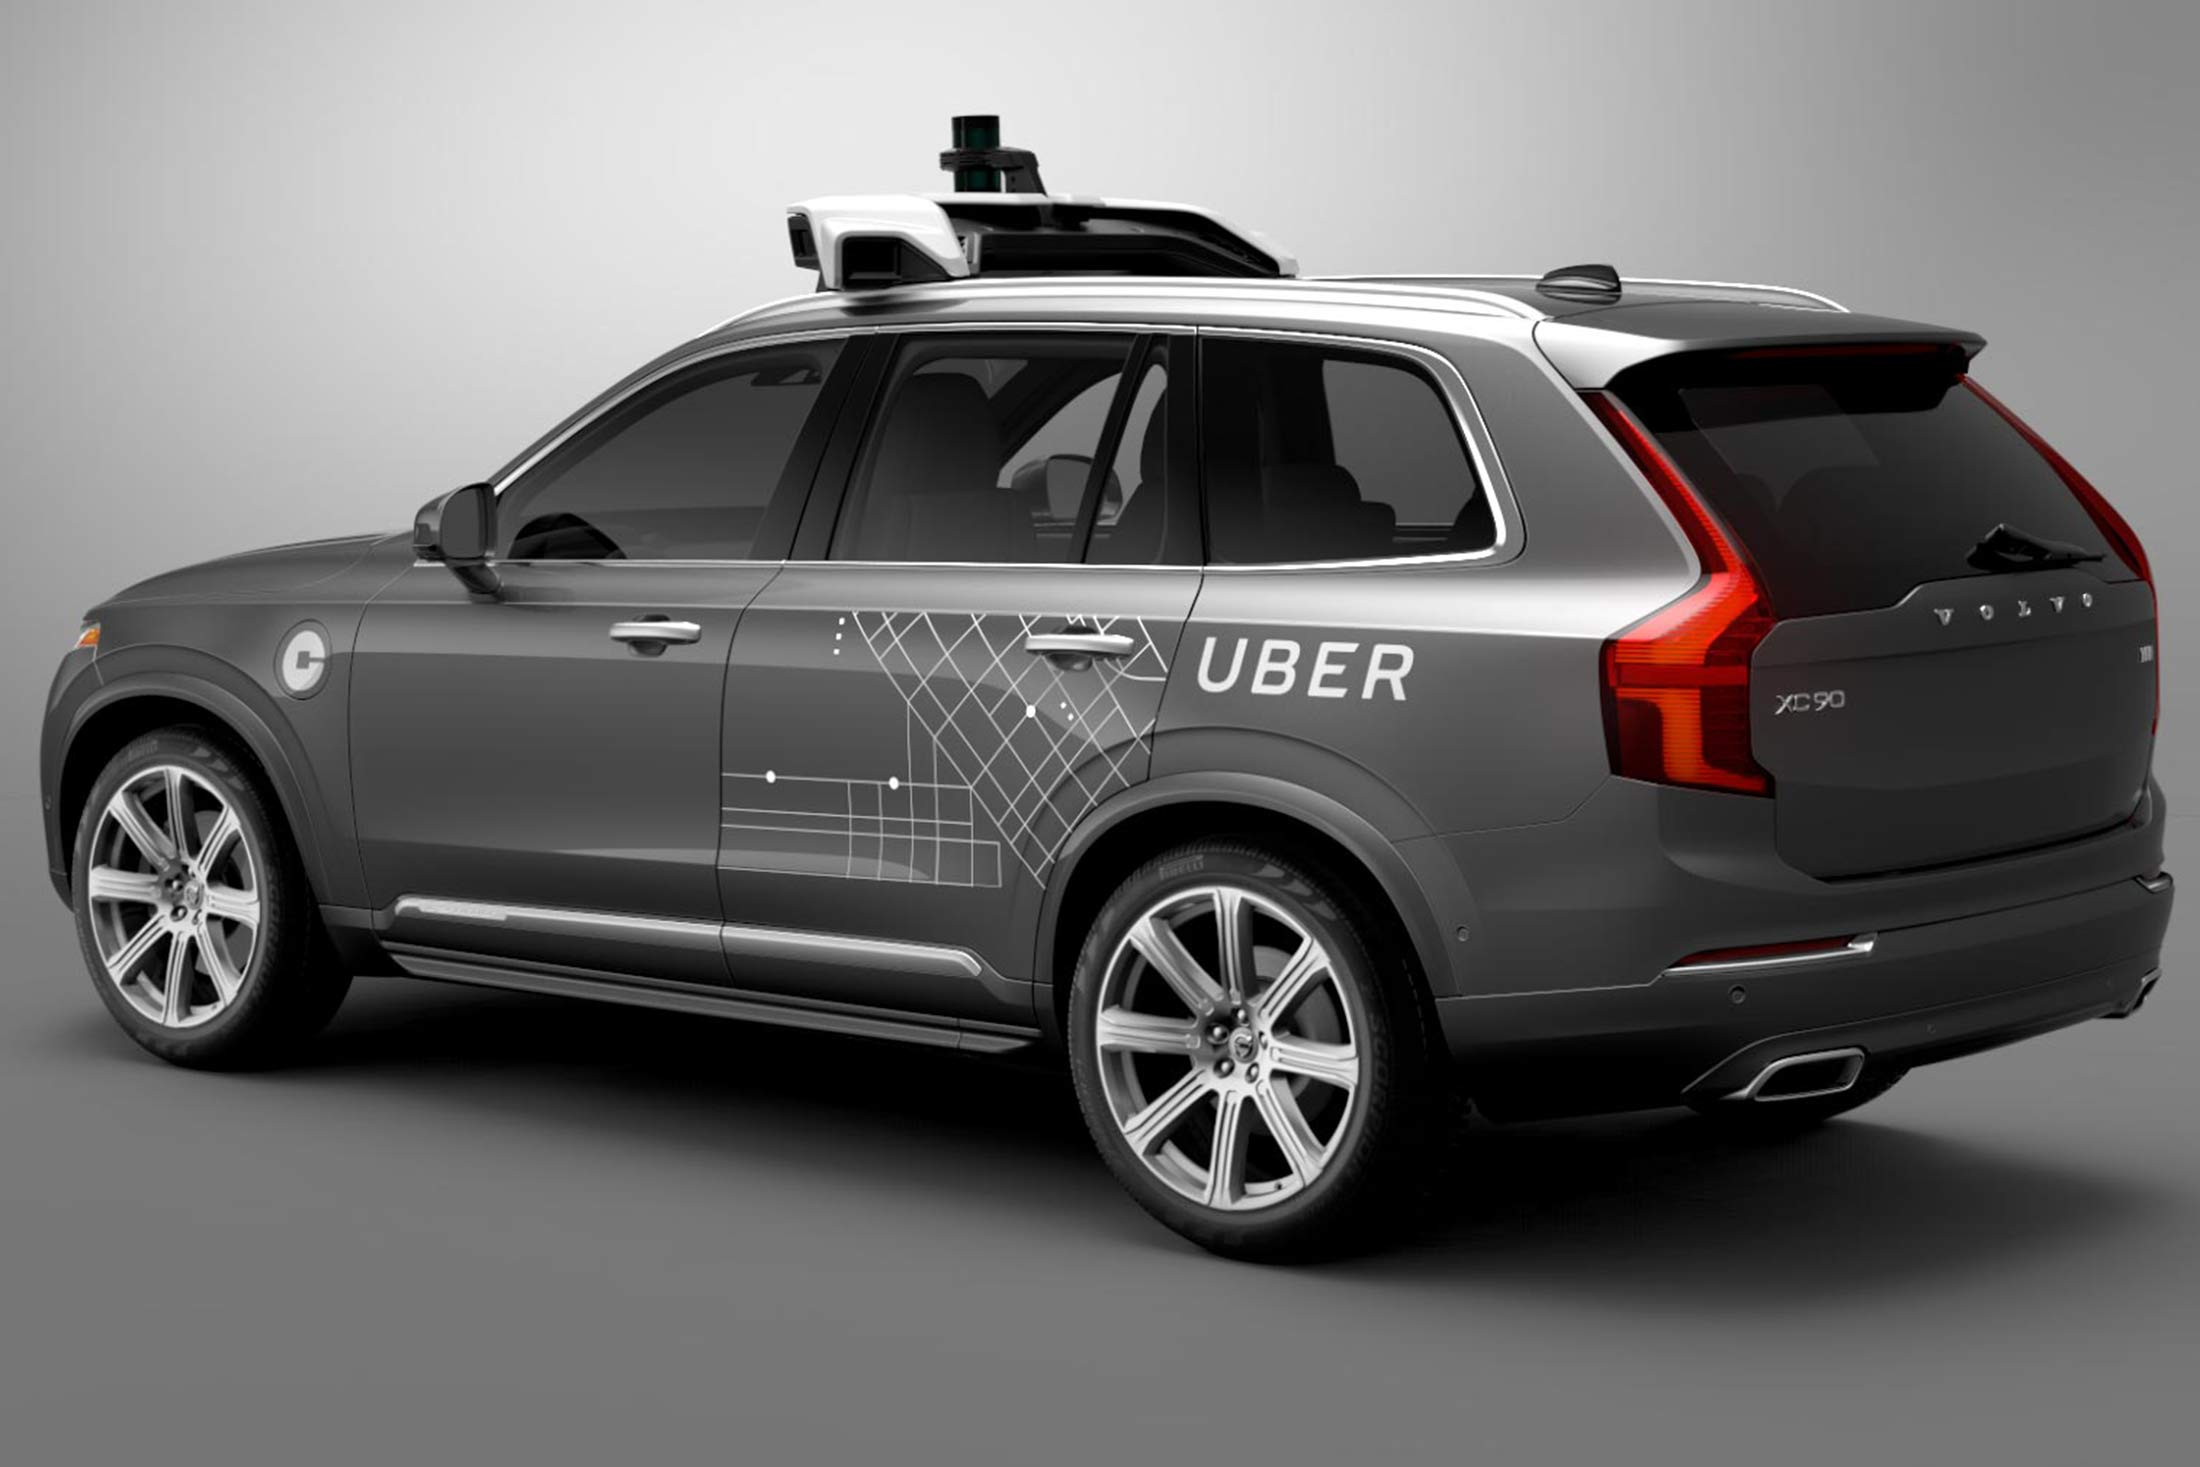 Volvo Signs Deal To Sell Upto 24,000 Autonomous Cars To Uber